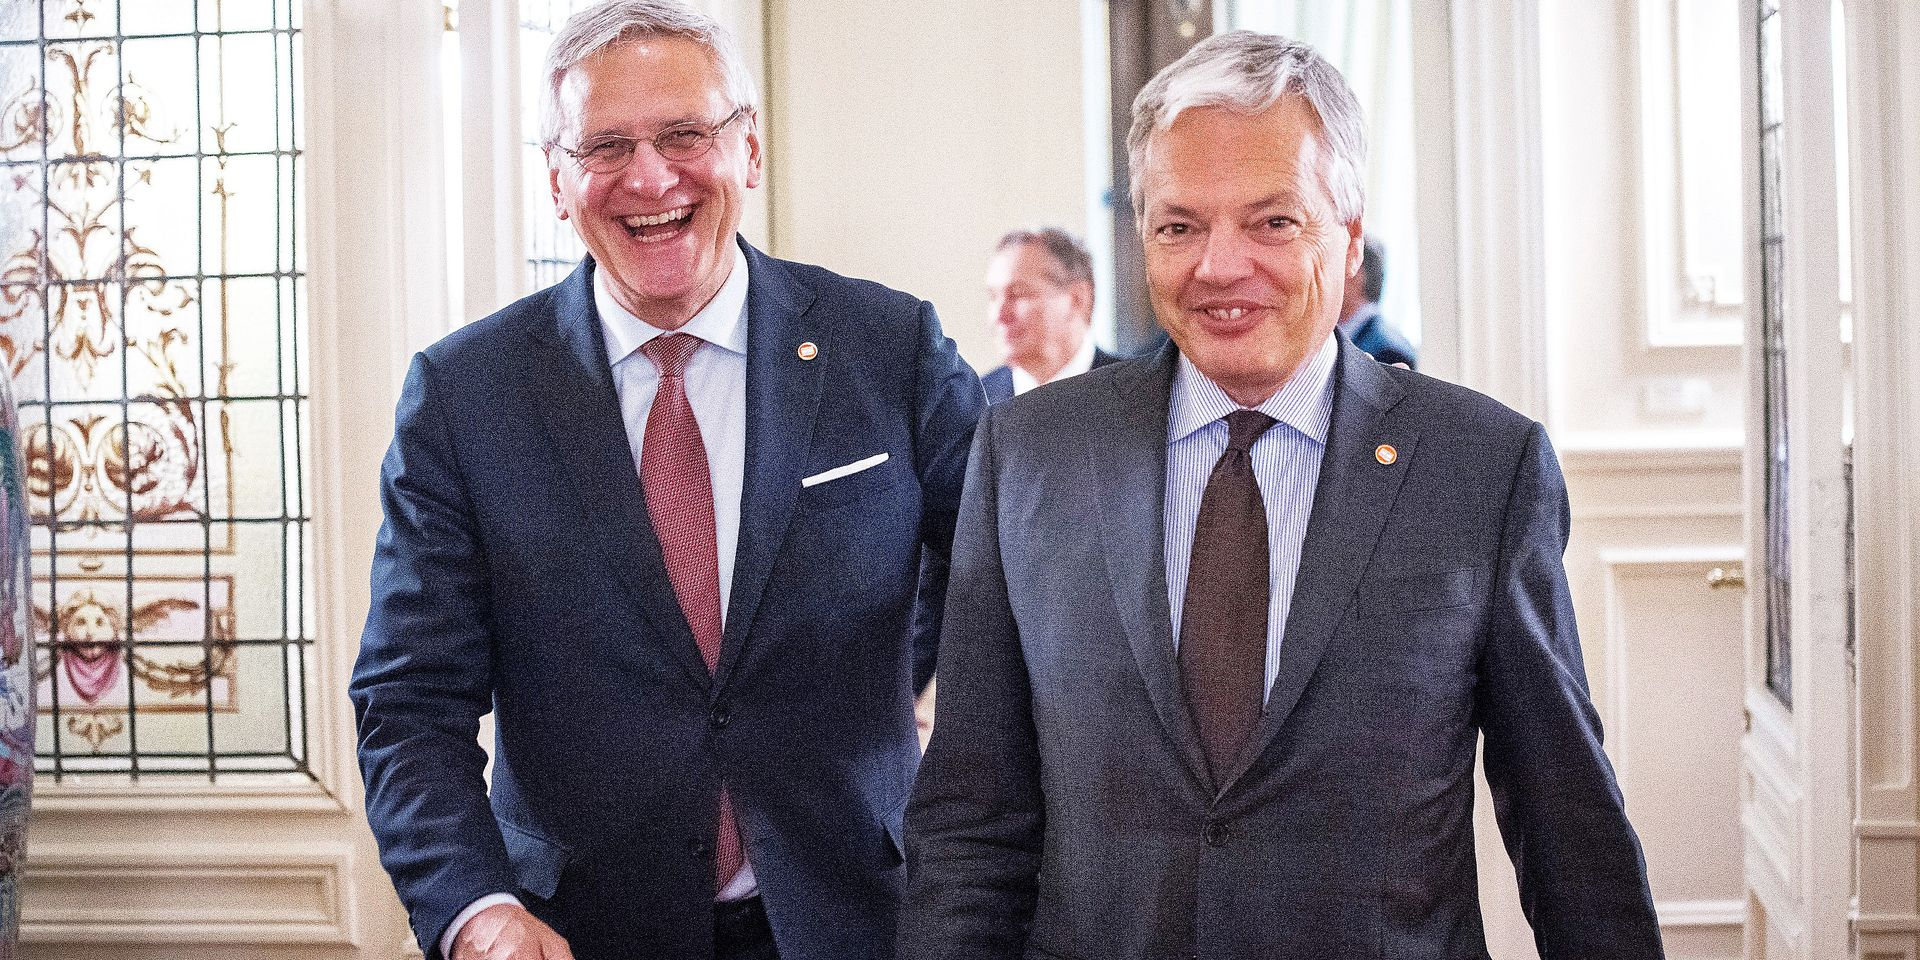 Vice-Prime Minister and Minister of Employment, Economy and Consumer Affairs Kris Peeters and Vice-Prime Minister and Foreign Minister Didier Reynders pictured leaving a meeting with the President of Argentina on the second day of a Belgian Economic mission to Argentina, Tuesday 26 June 2018 in Buenos Aires, Argentina. Several federal and regional ministers accompany the princess on a week-long economic mission to Argentina and Uruguay. BELGA PHOTO LAURIE DIEFFEMBACQ